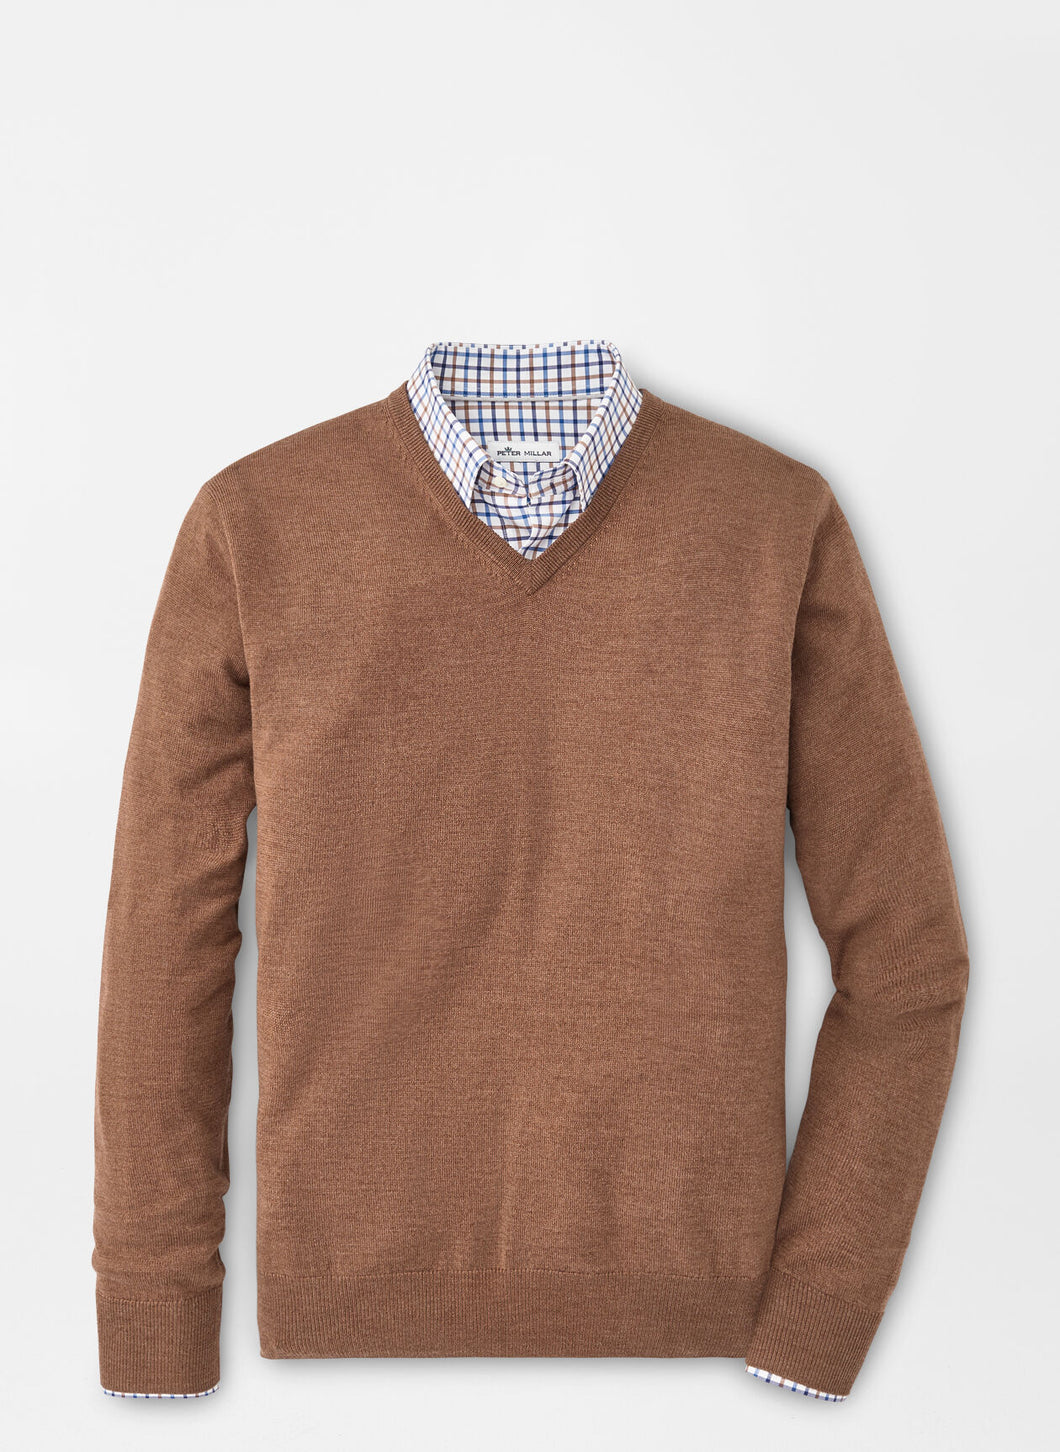 Peter Millar Crown Soft Merino-Cashmere V-Neck in Scotch